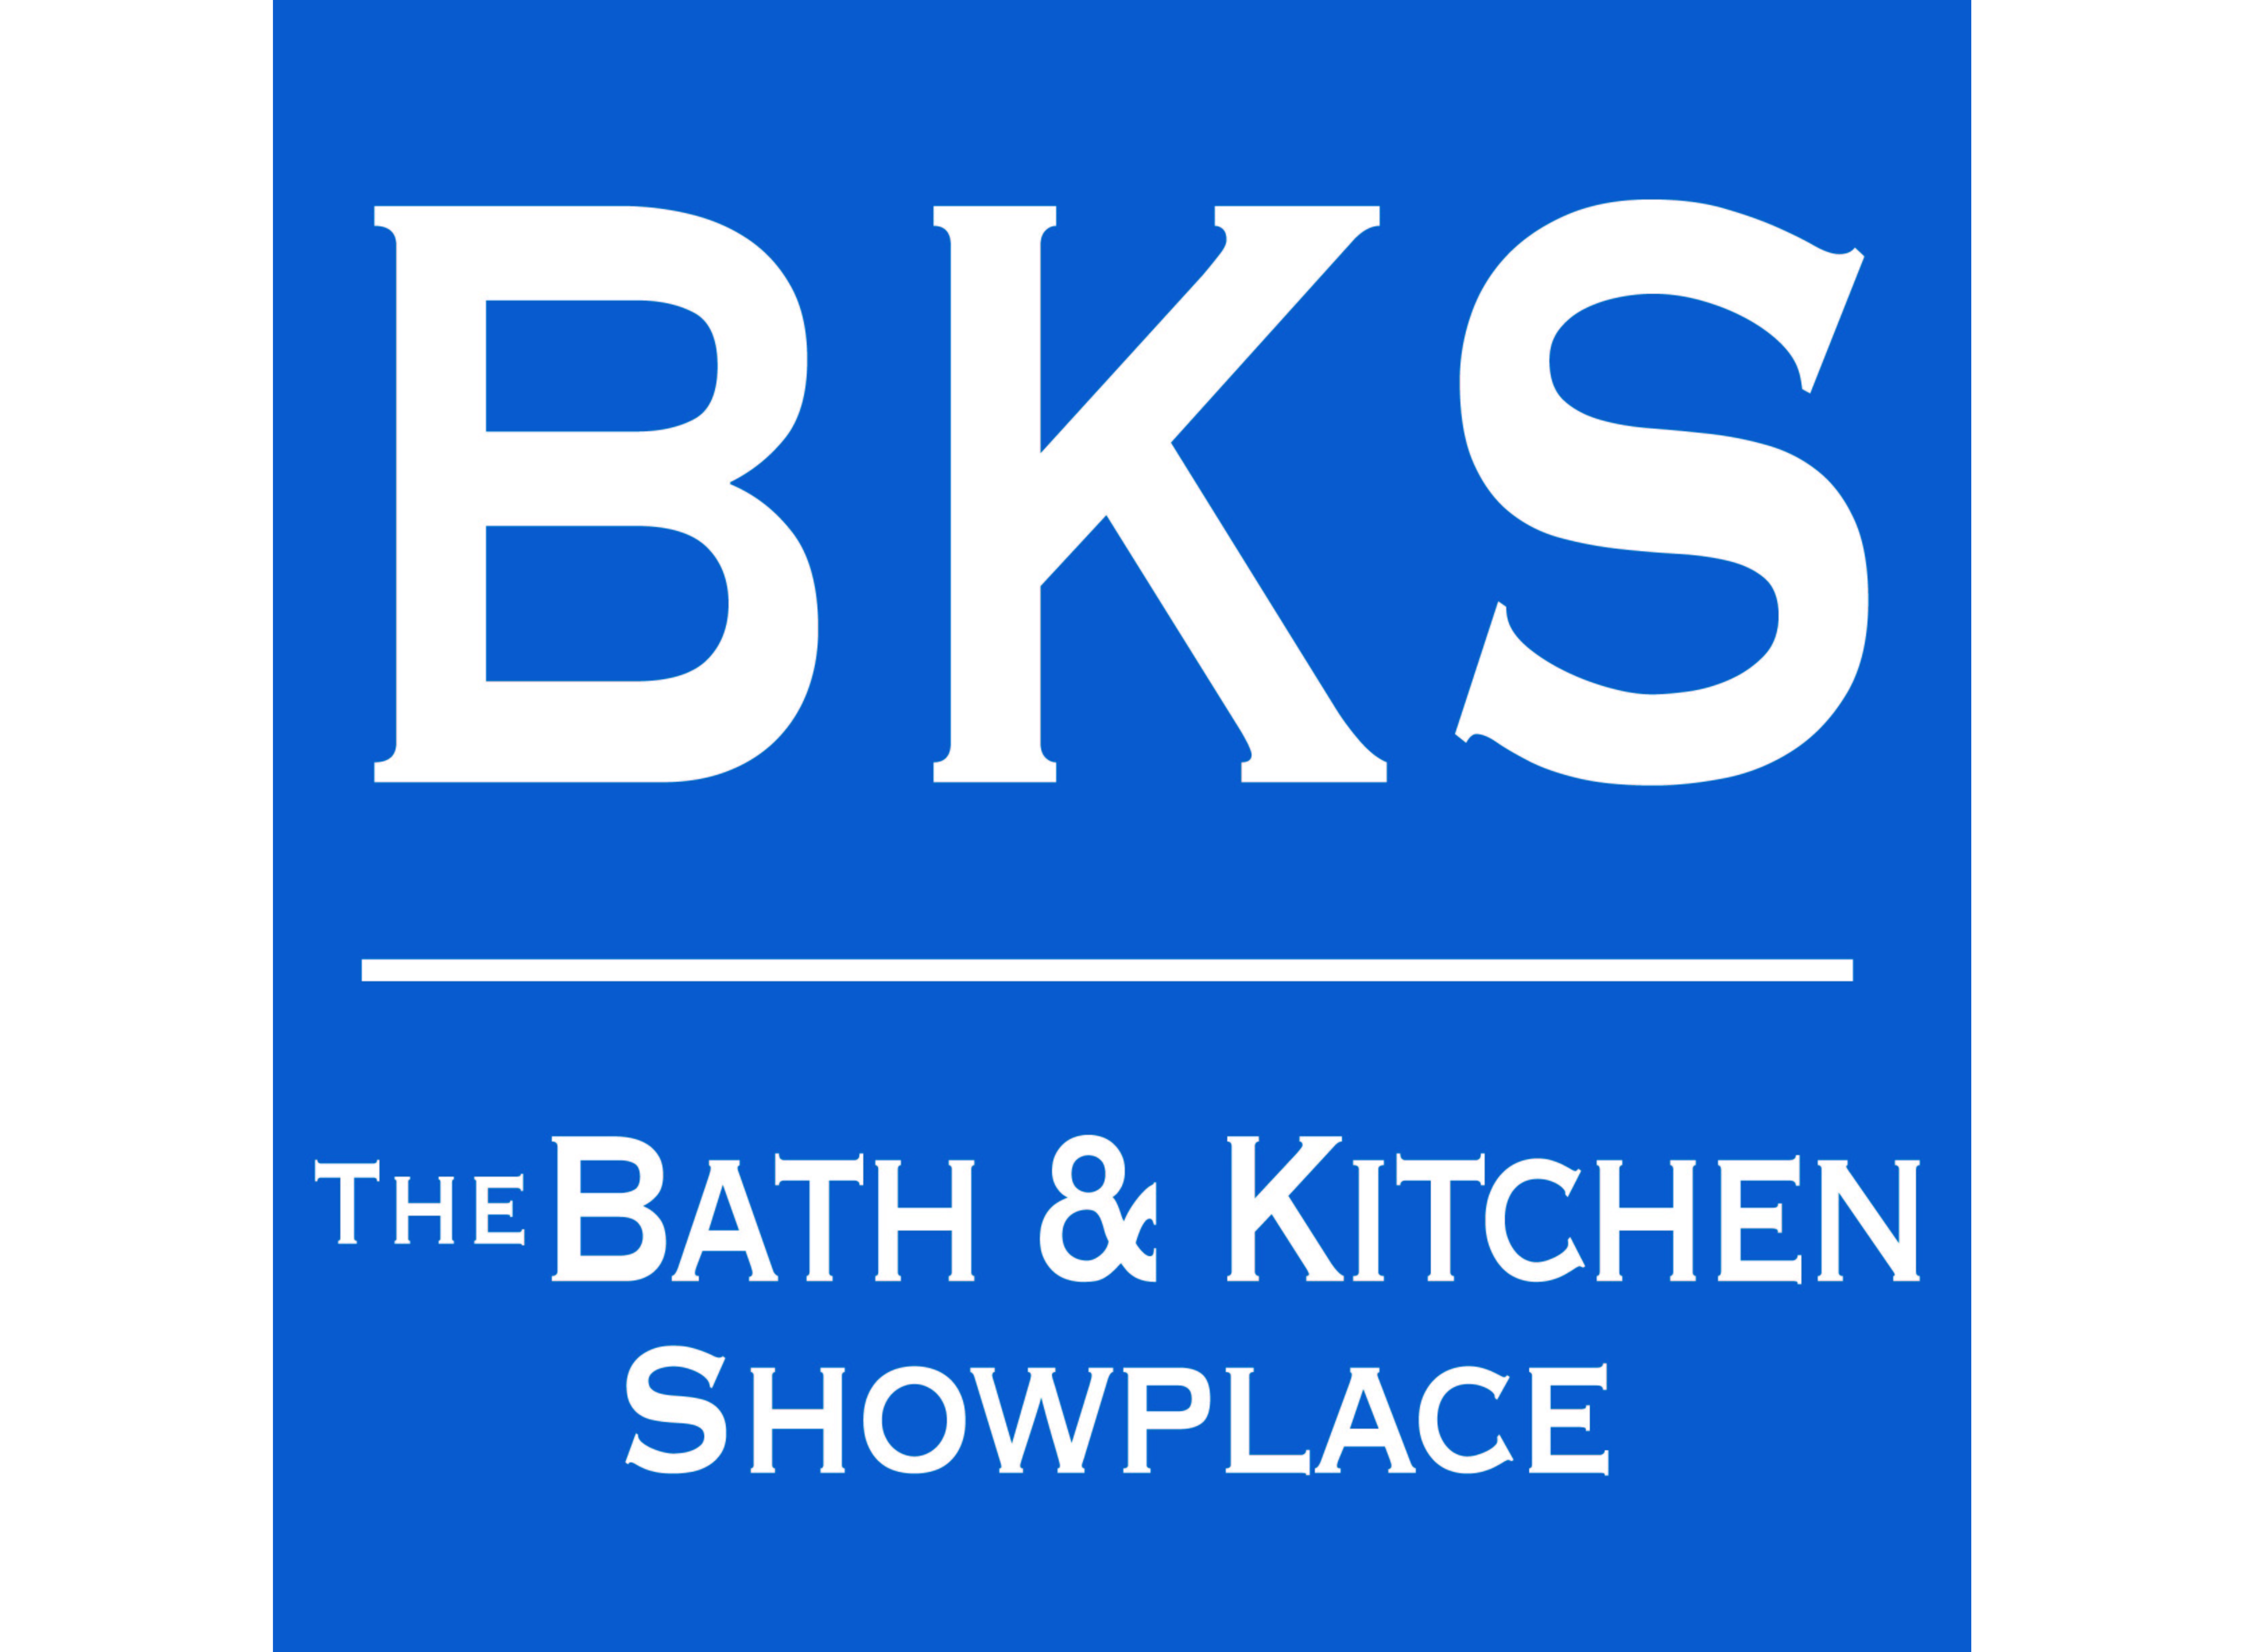 kohler kitchen bathroom products at the bath kitchen showplace rh thebathkitchenshowplacedallas com the bath and kitchen showplace conroe the bath and kitchen showplace san antonio